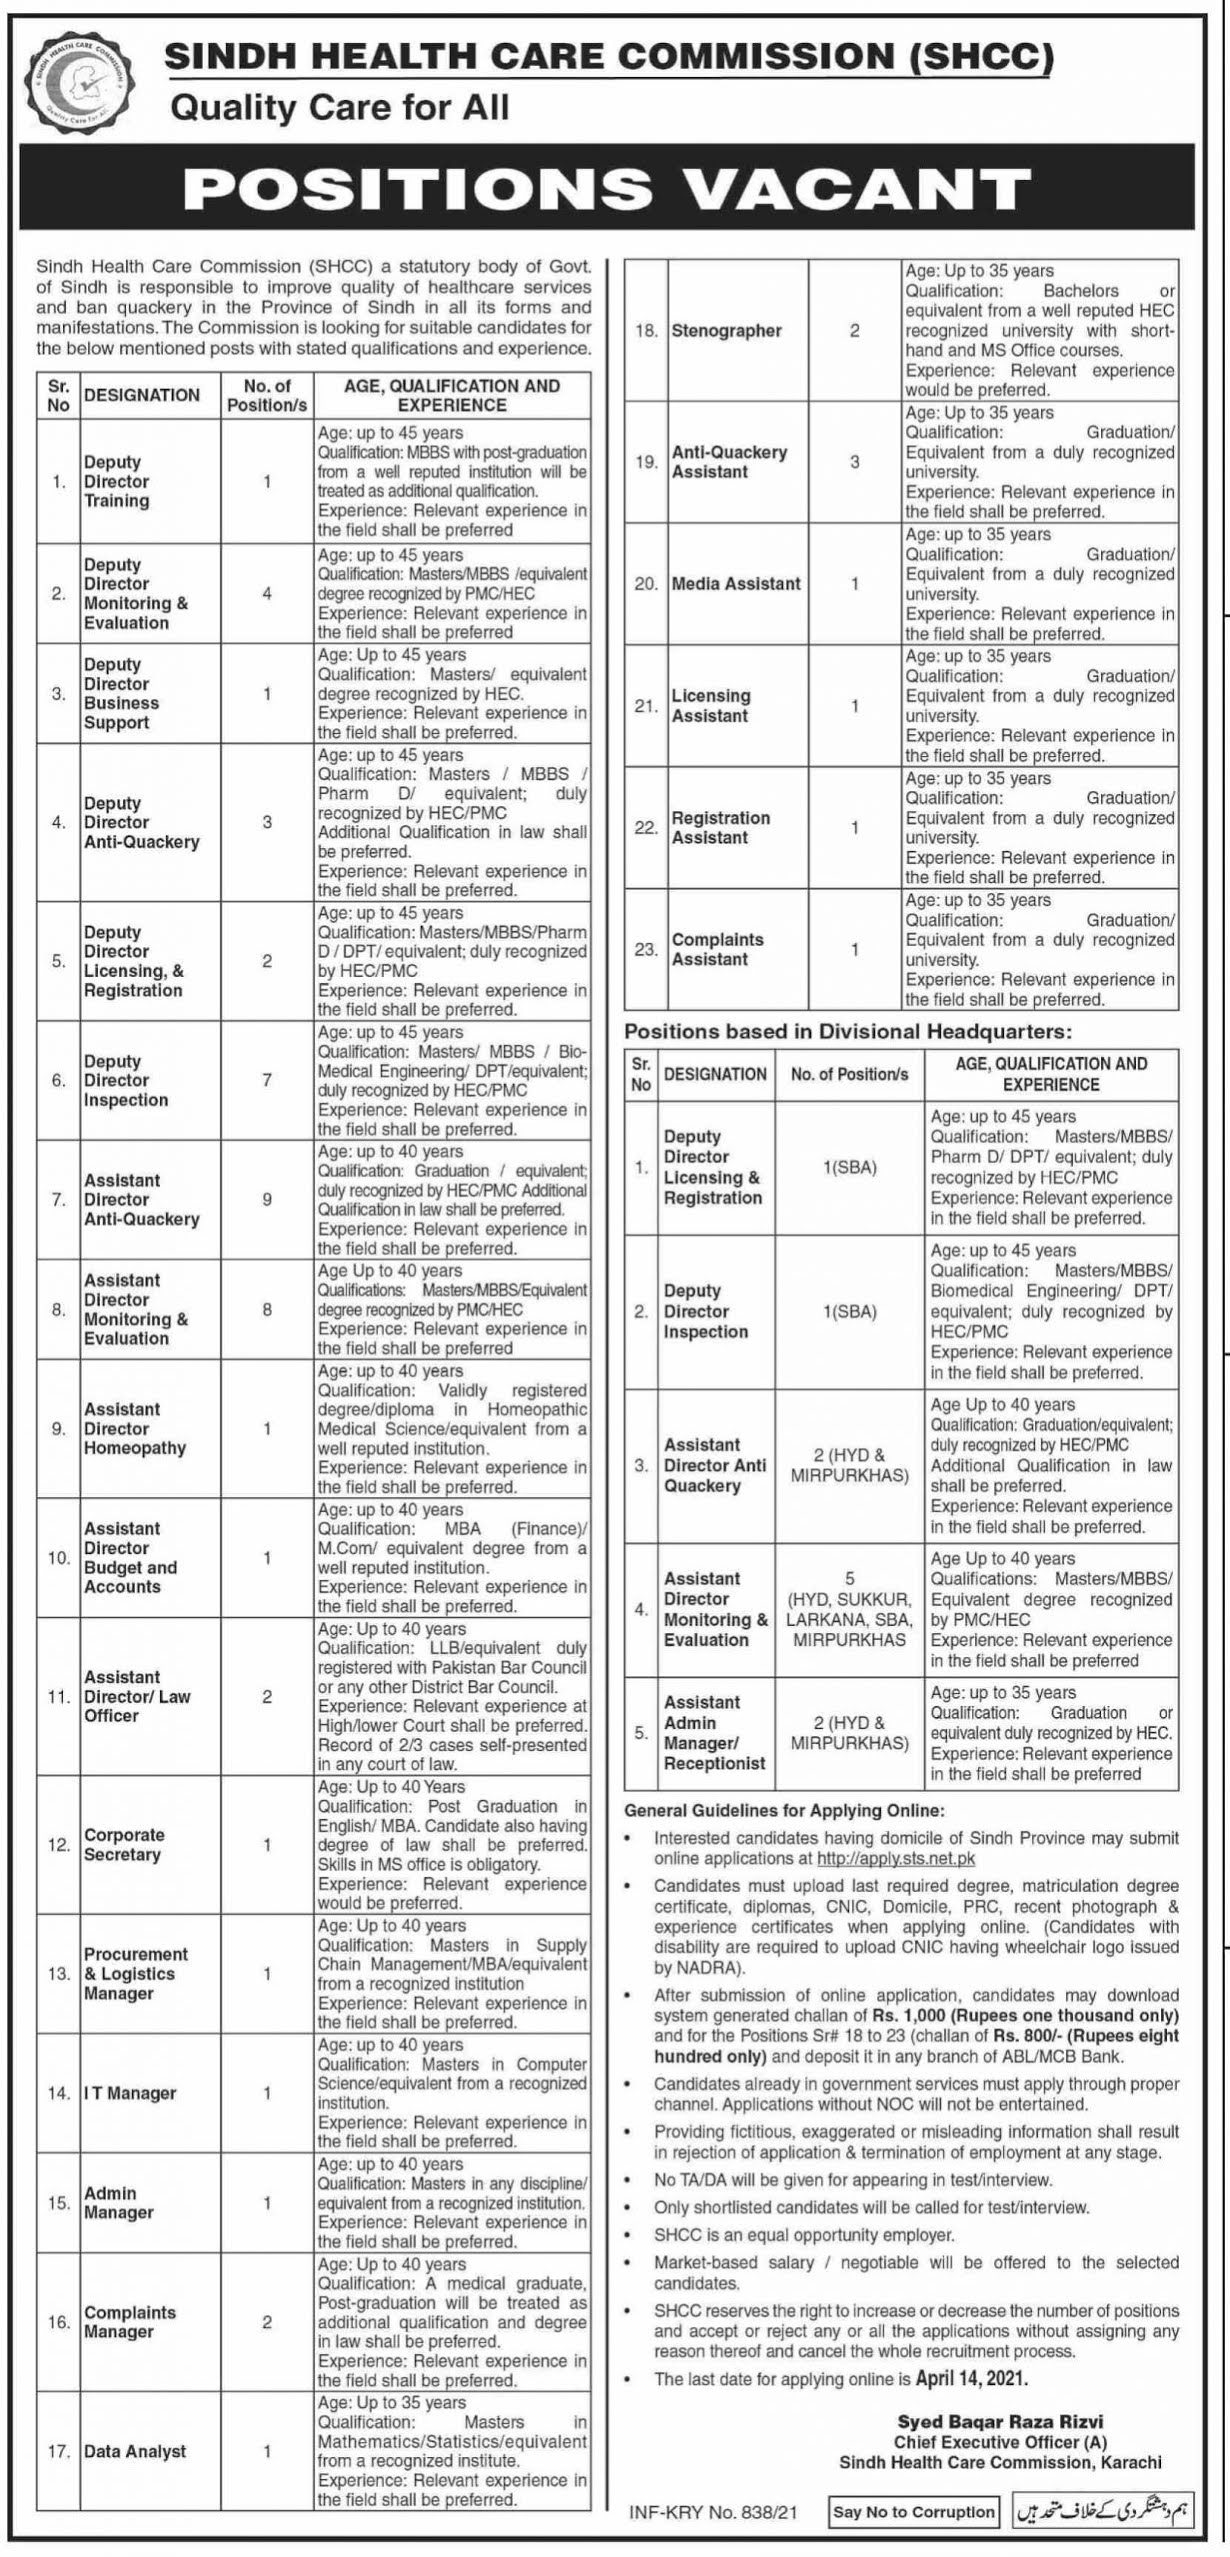 government,sindh health care commission shcc karachi,deputy director, assistant director, corporate secretary, procurement & logistics manager, it manager, admin manager, complaint manager, data analyst, stenographer, anti-quackery assistant, media assistant, licensing assistant, registration assistant, complaints assistant,latest jobs,last date,requirements,application form,how to apply, jobs 2021,